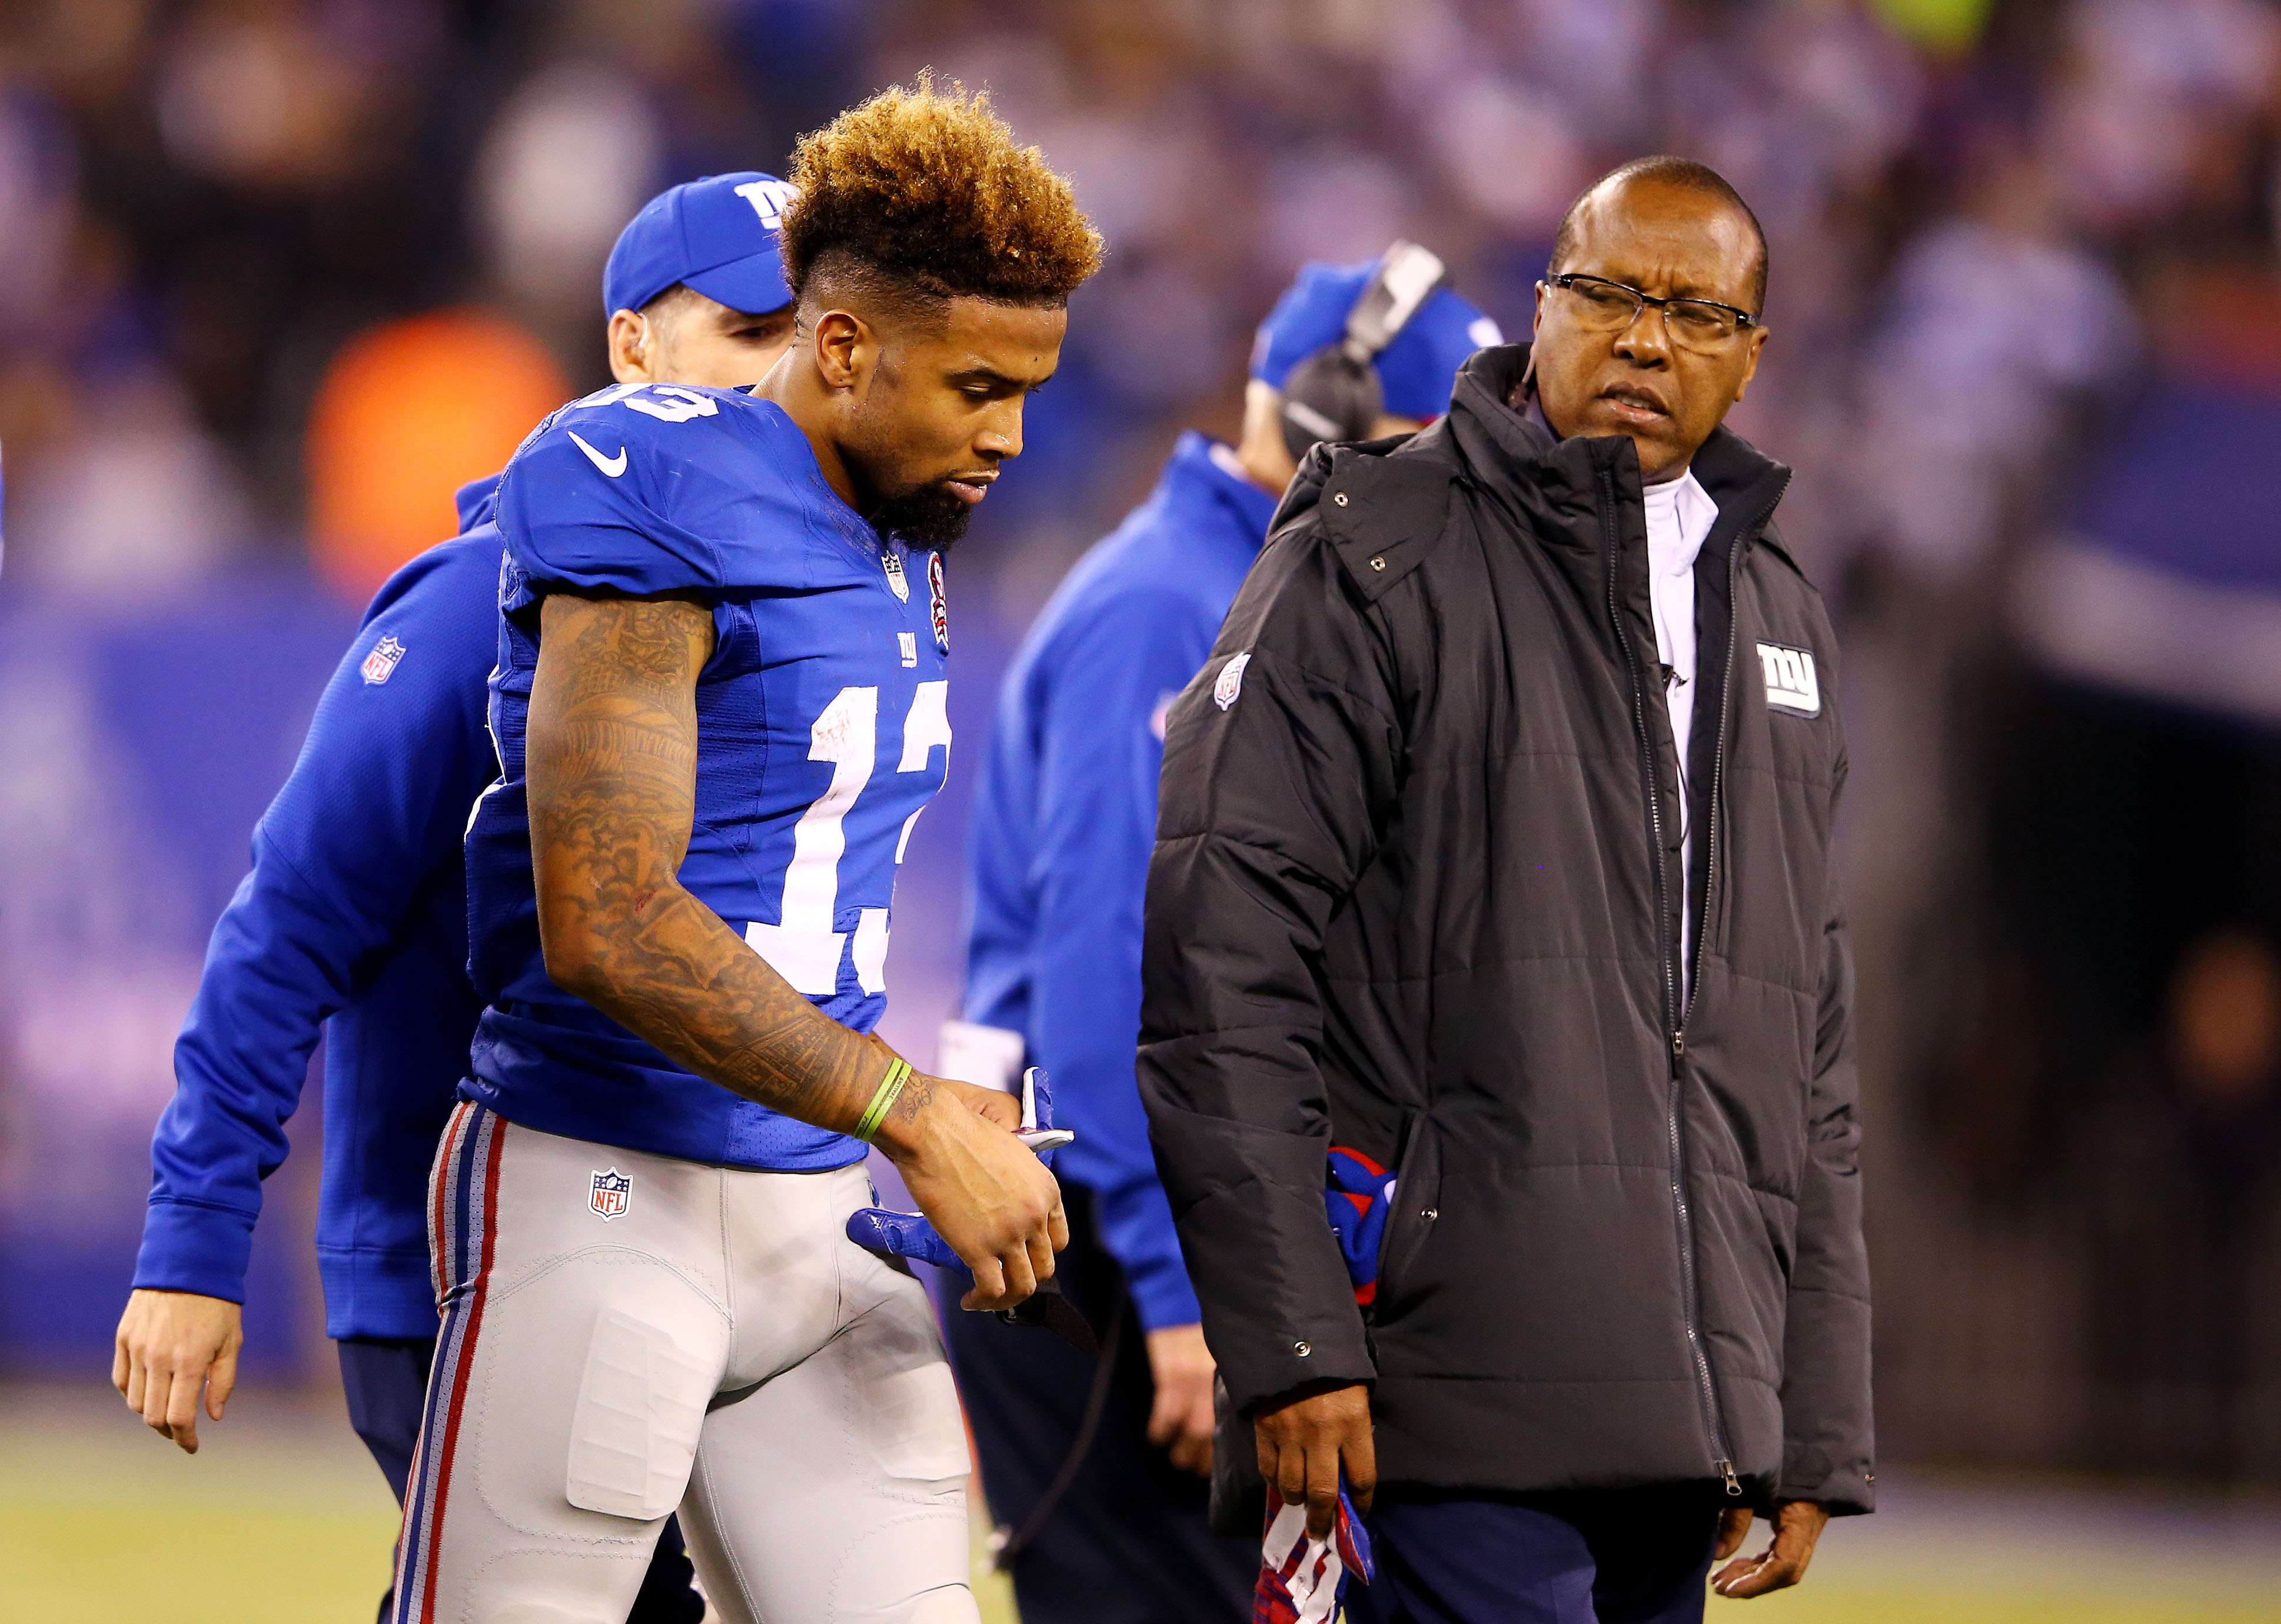 Odell Beckham leaves Sunday's game after being hit in the back